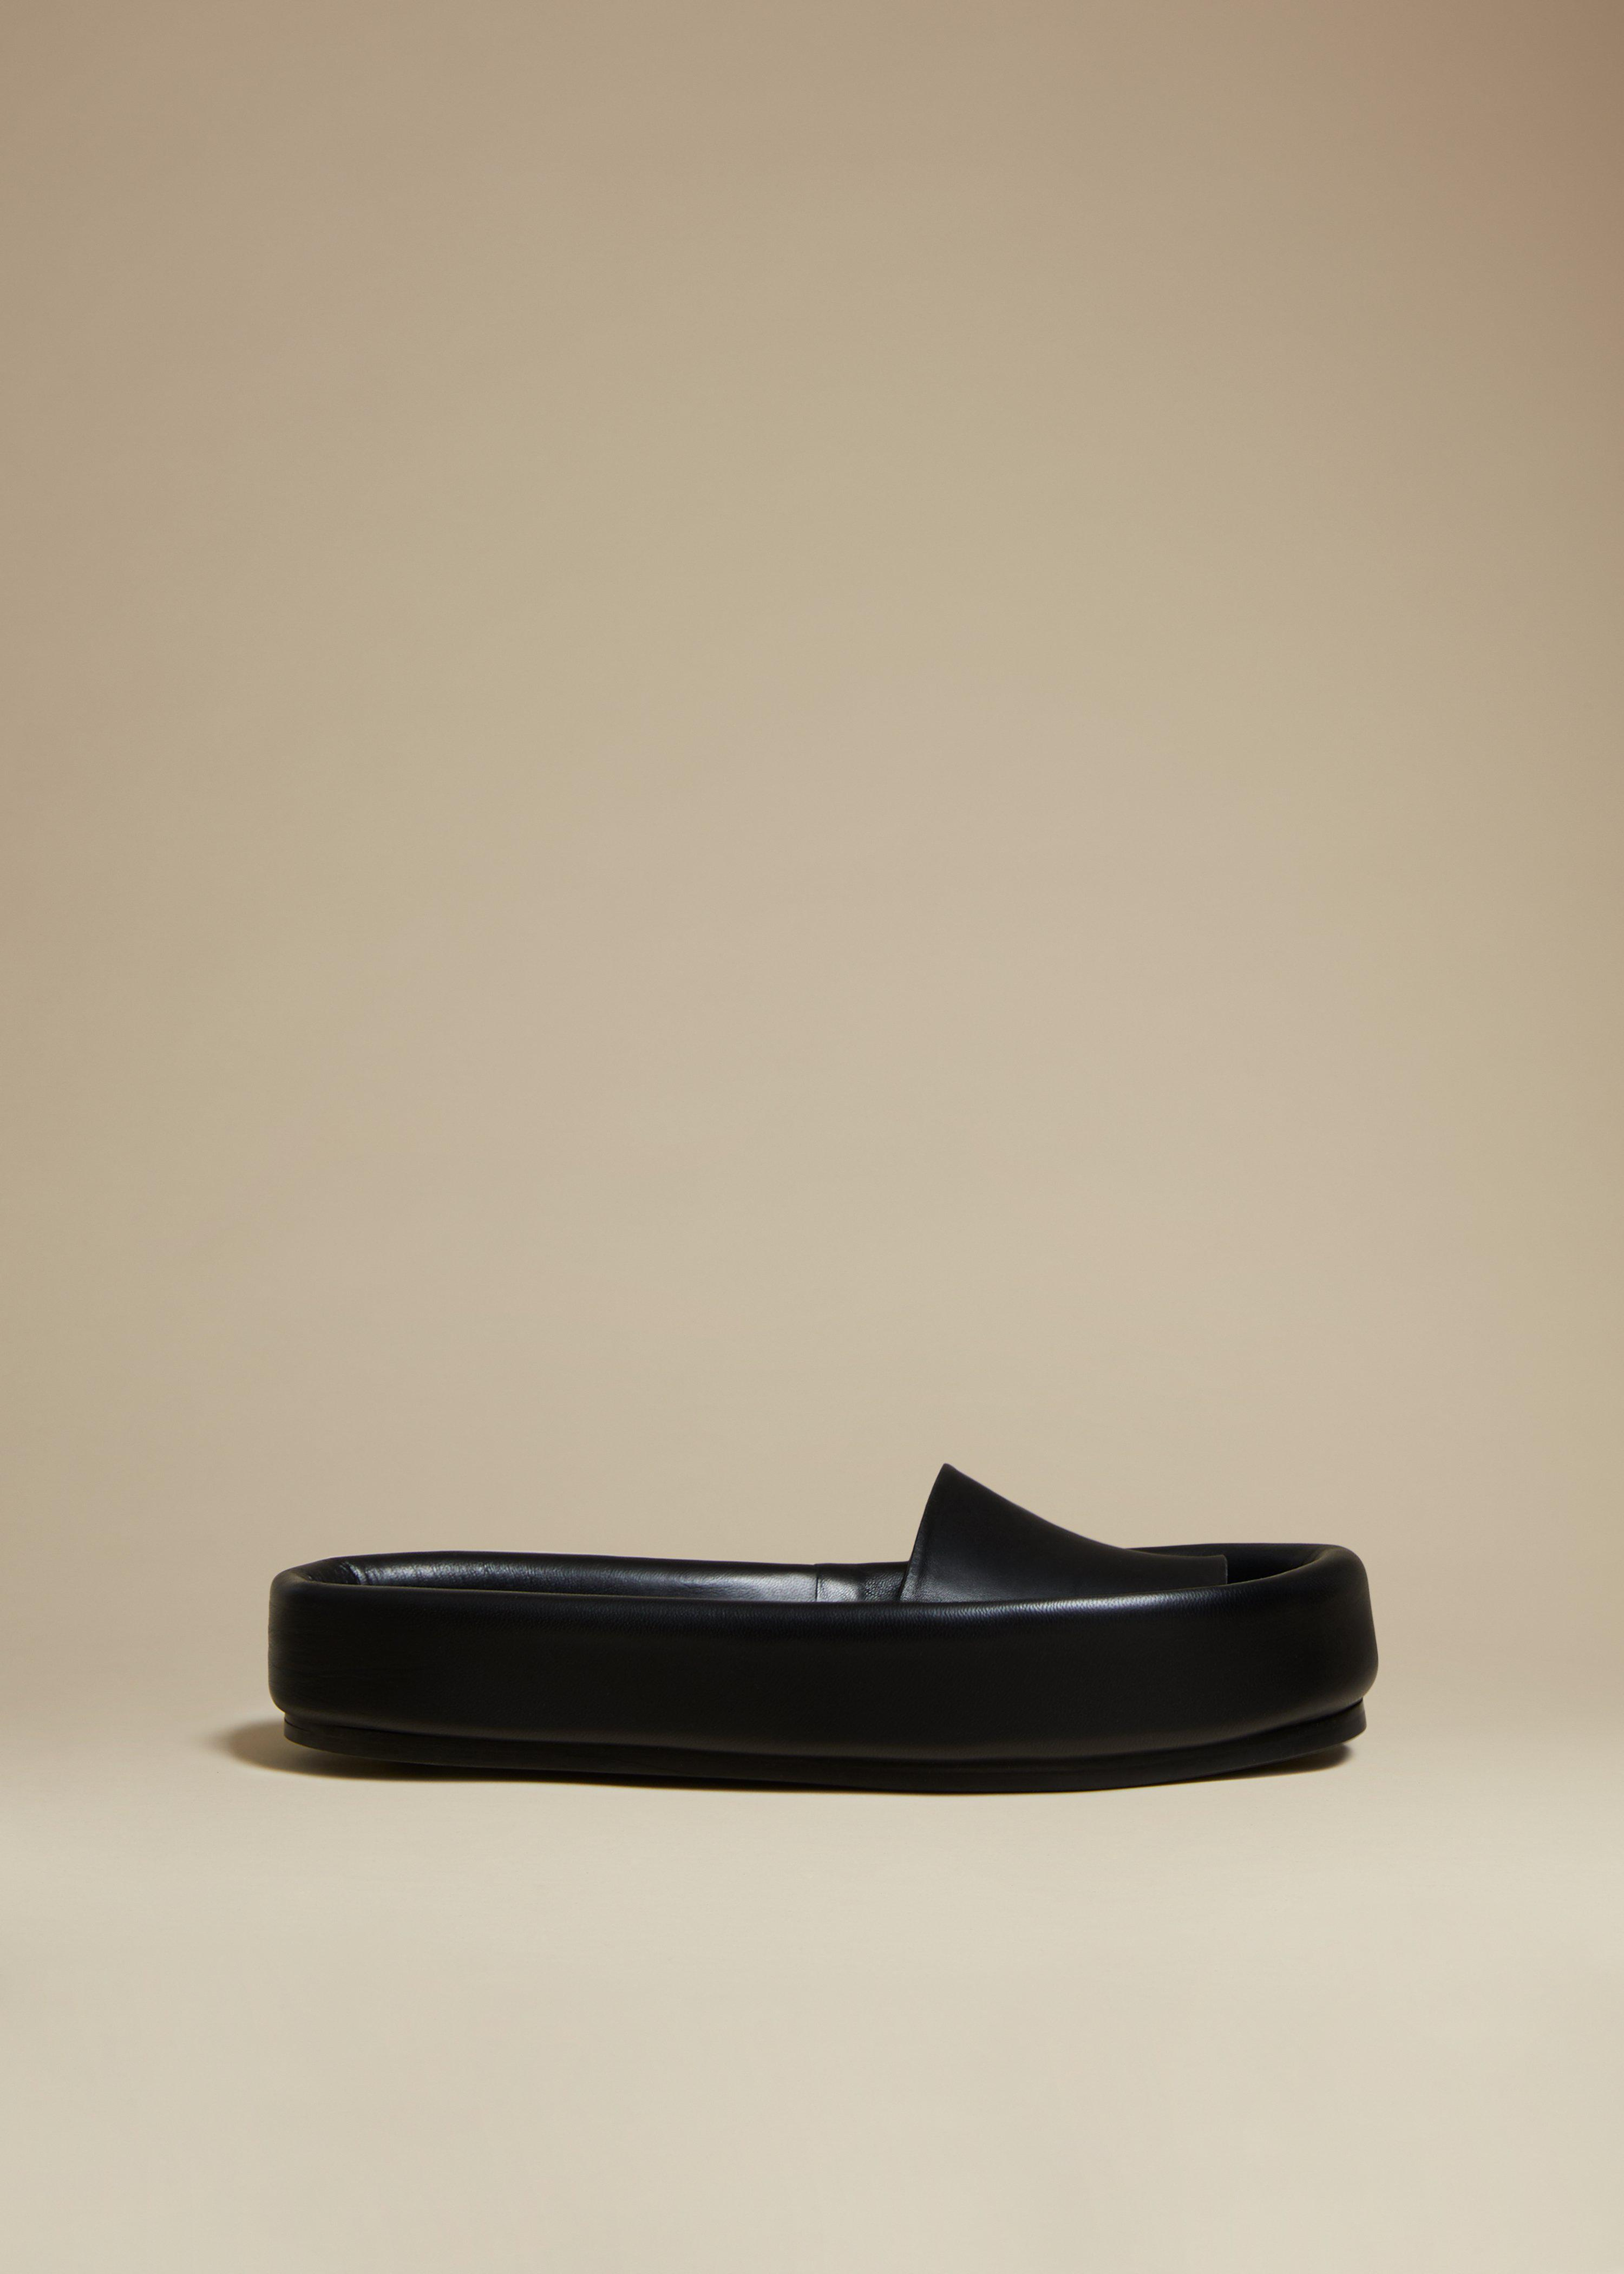 The Venice Sandal in Black Leather